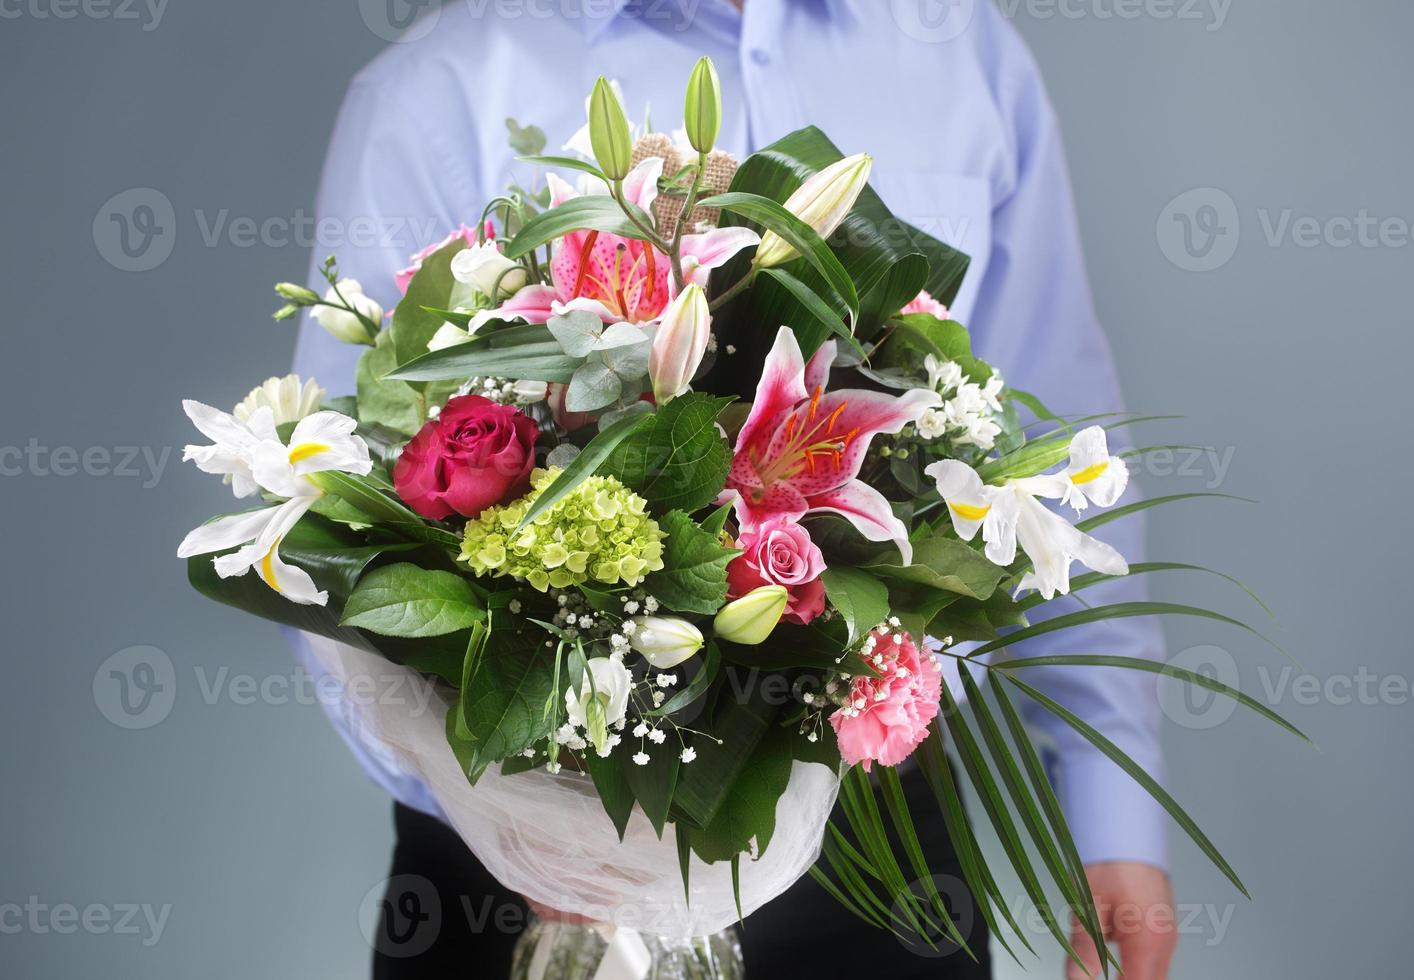 Bouquet of flowers photo